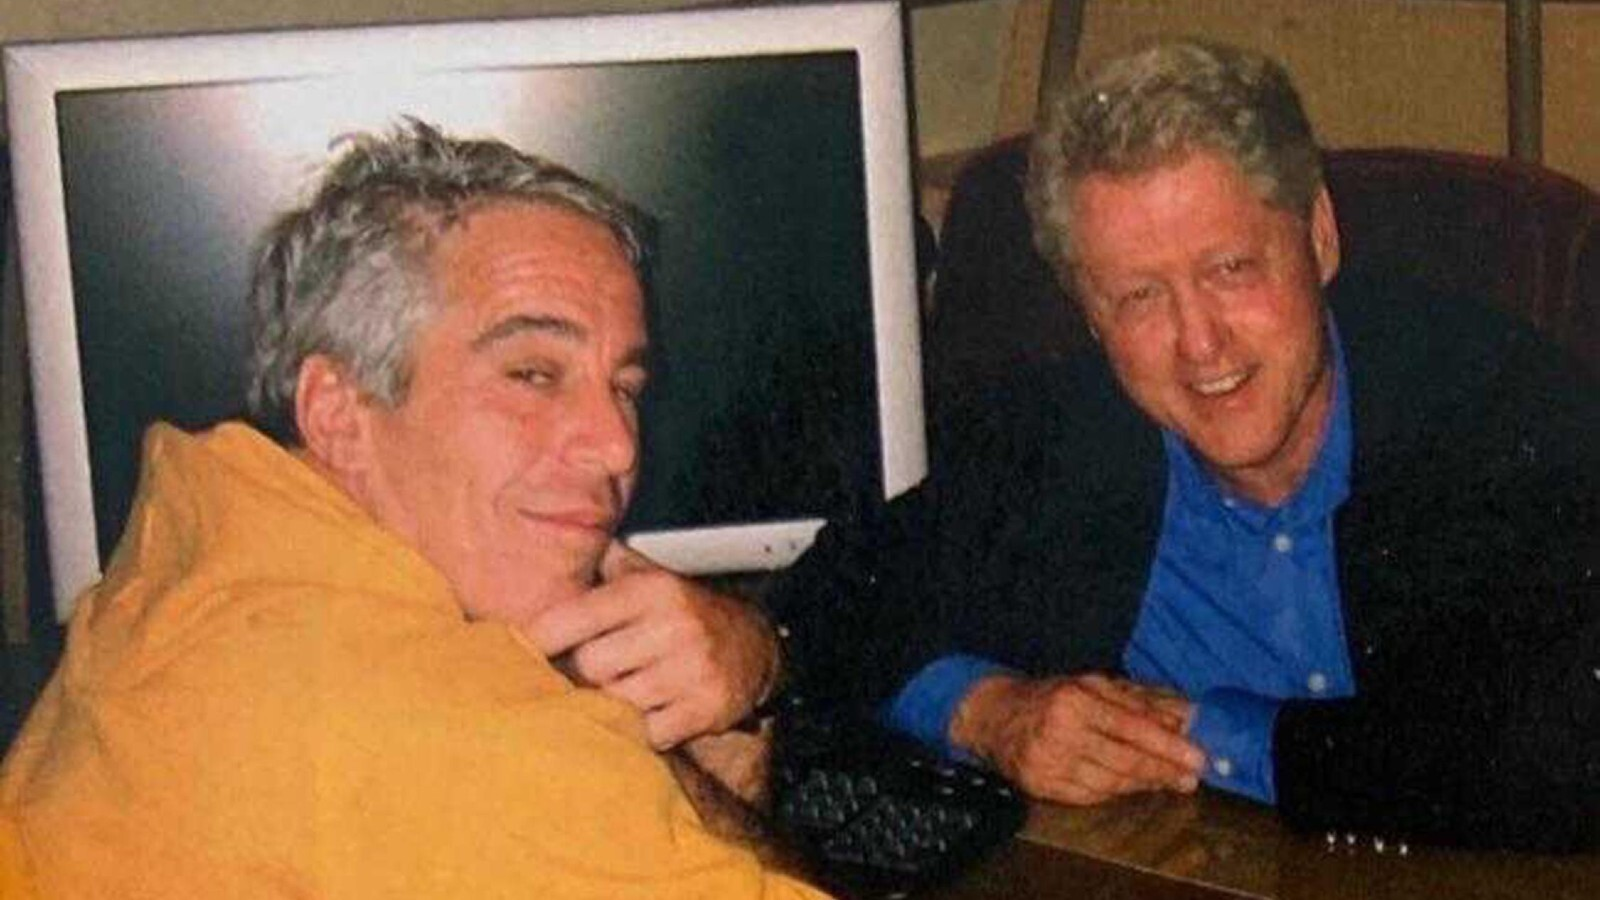 Jeffrey Epstein has a black book full of elites like Bill Clinton and Prince Andrew. But how did so many elites befriend Jeffrey Epstein?